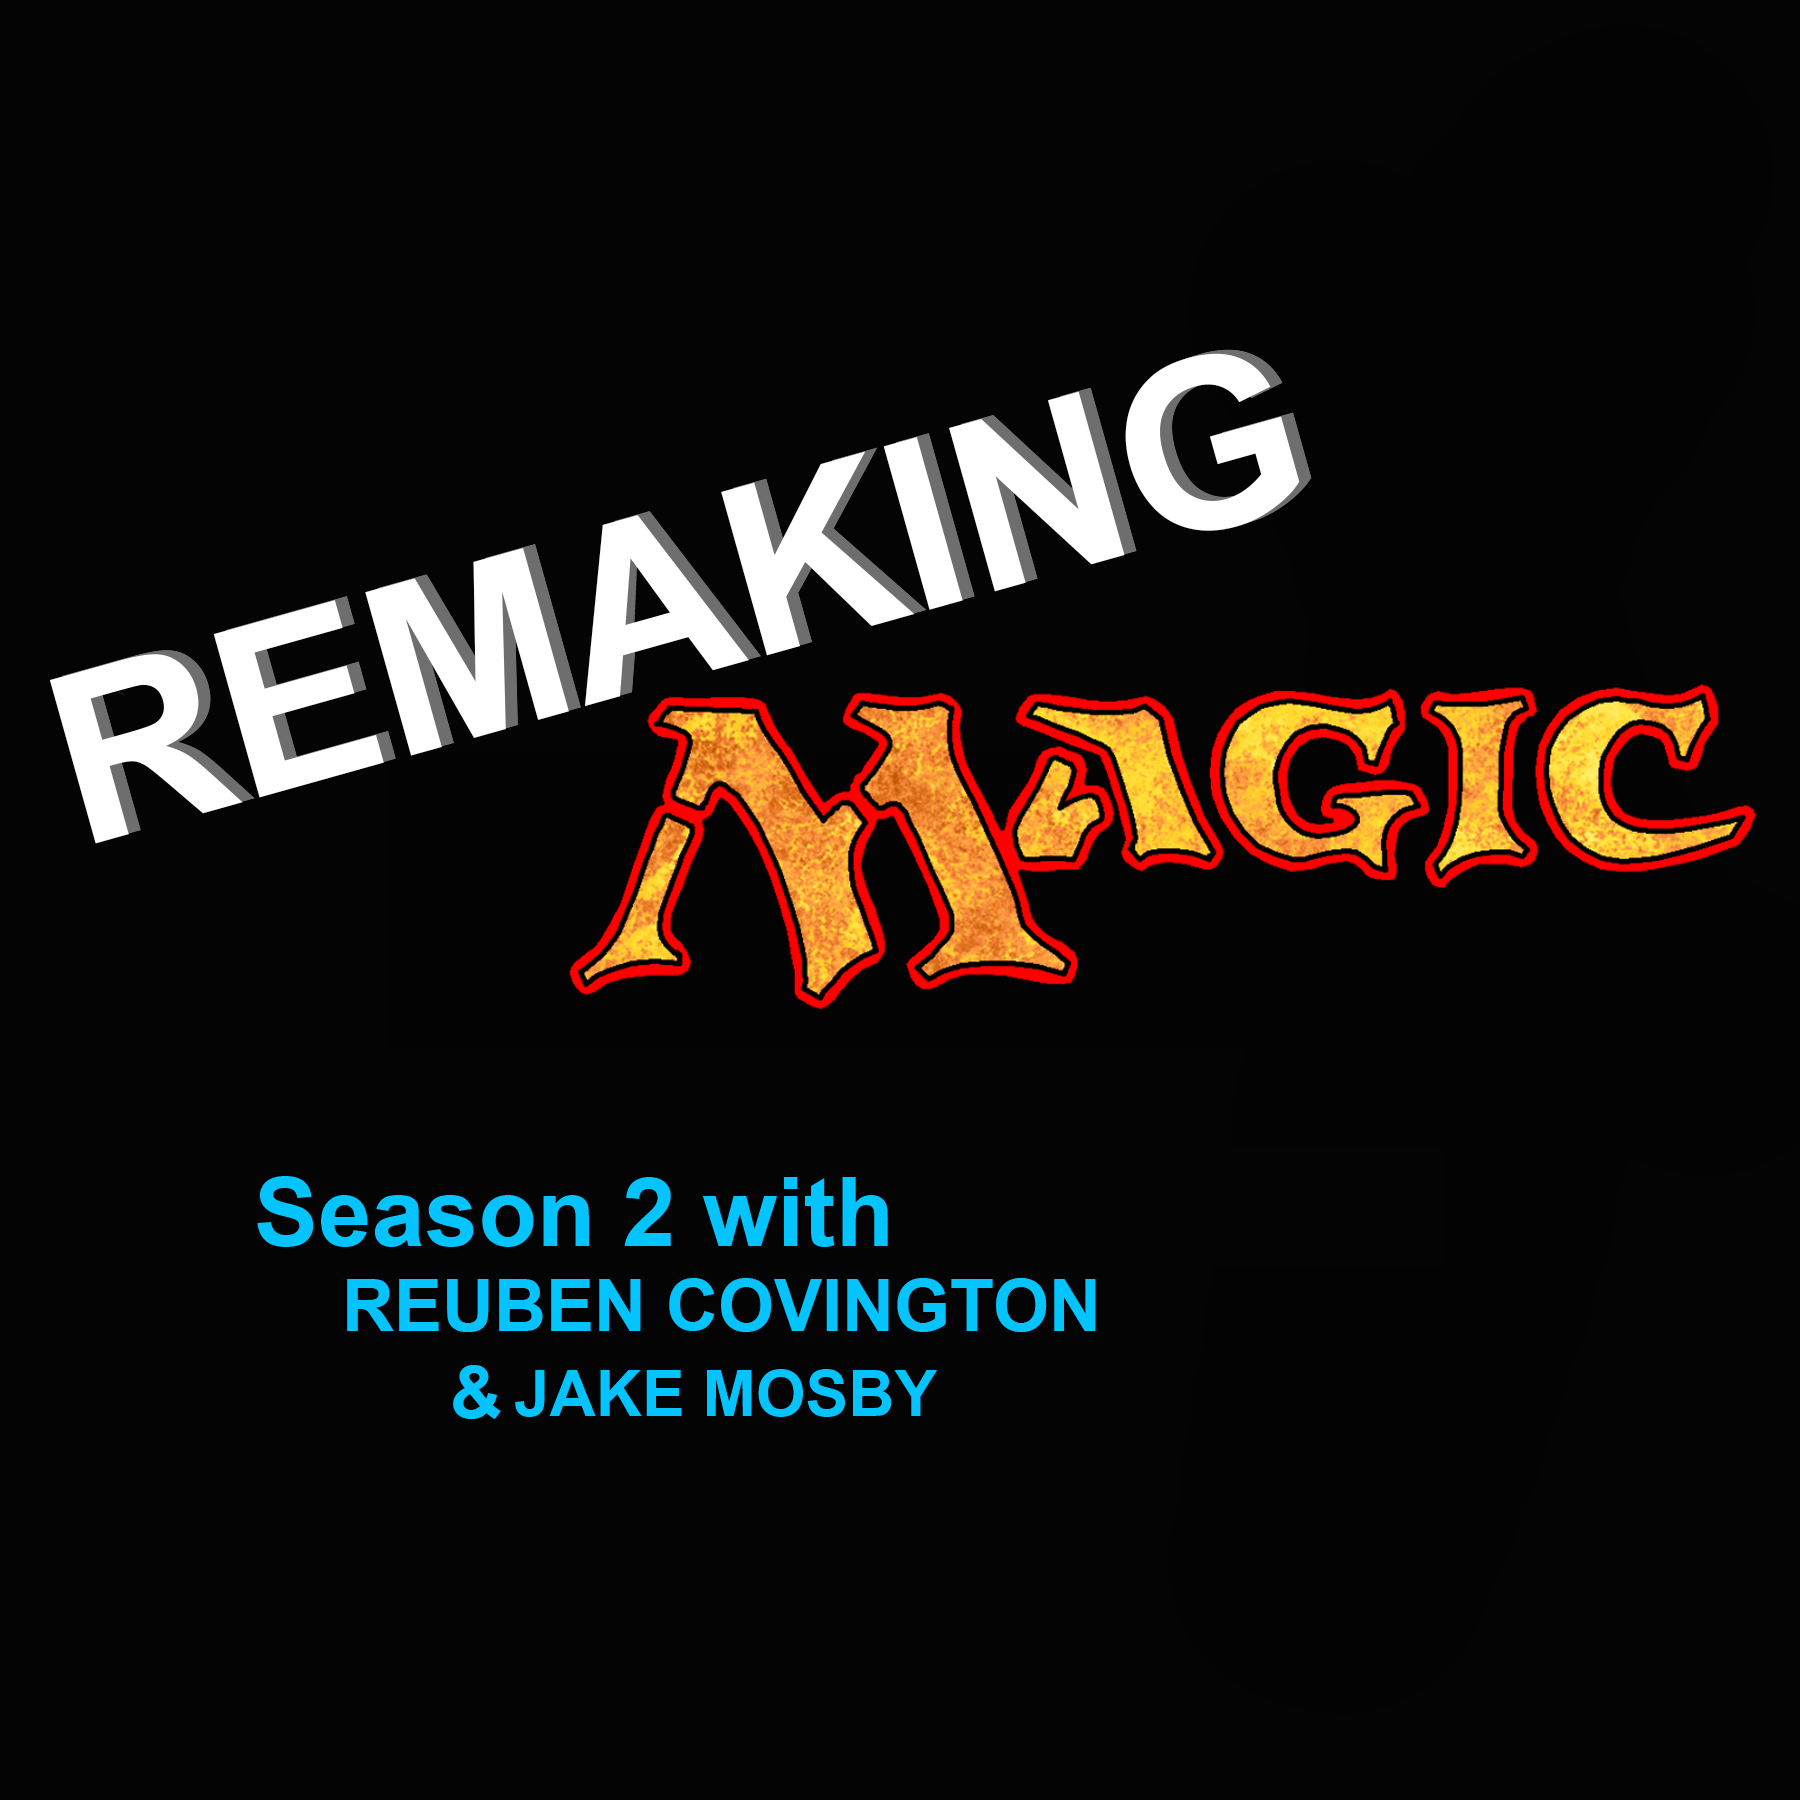 Remaking Magic